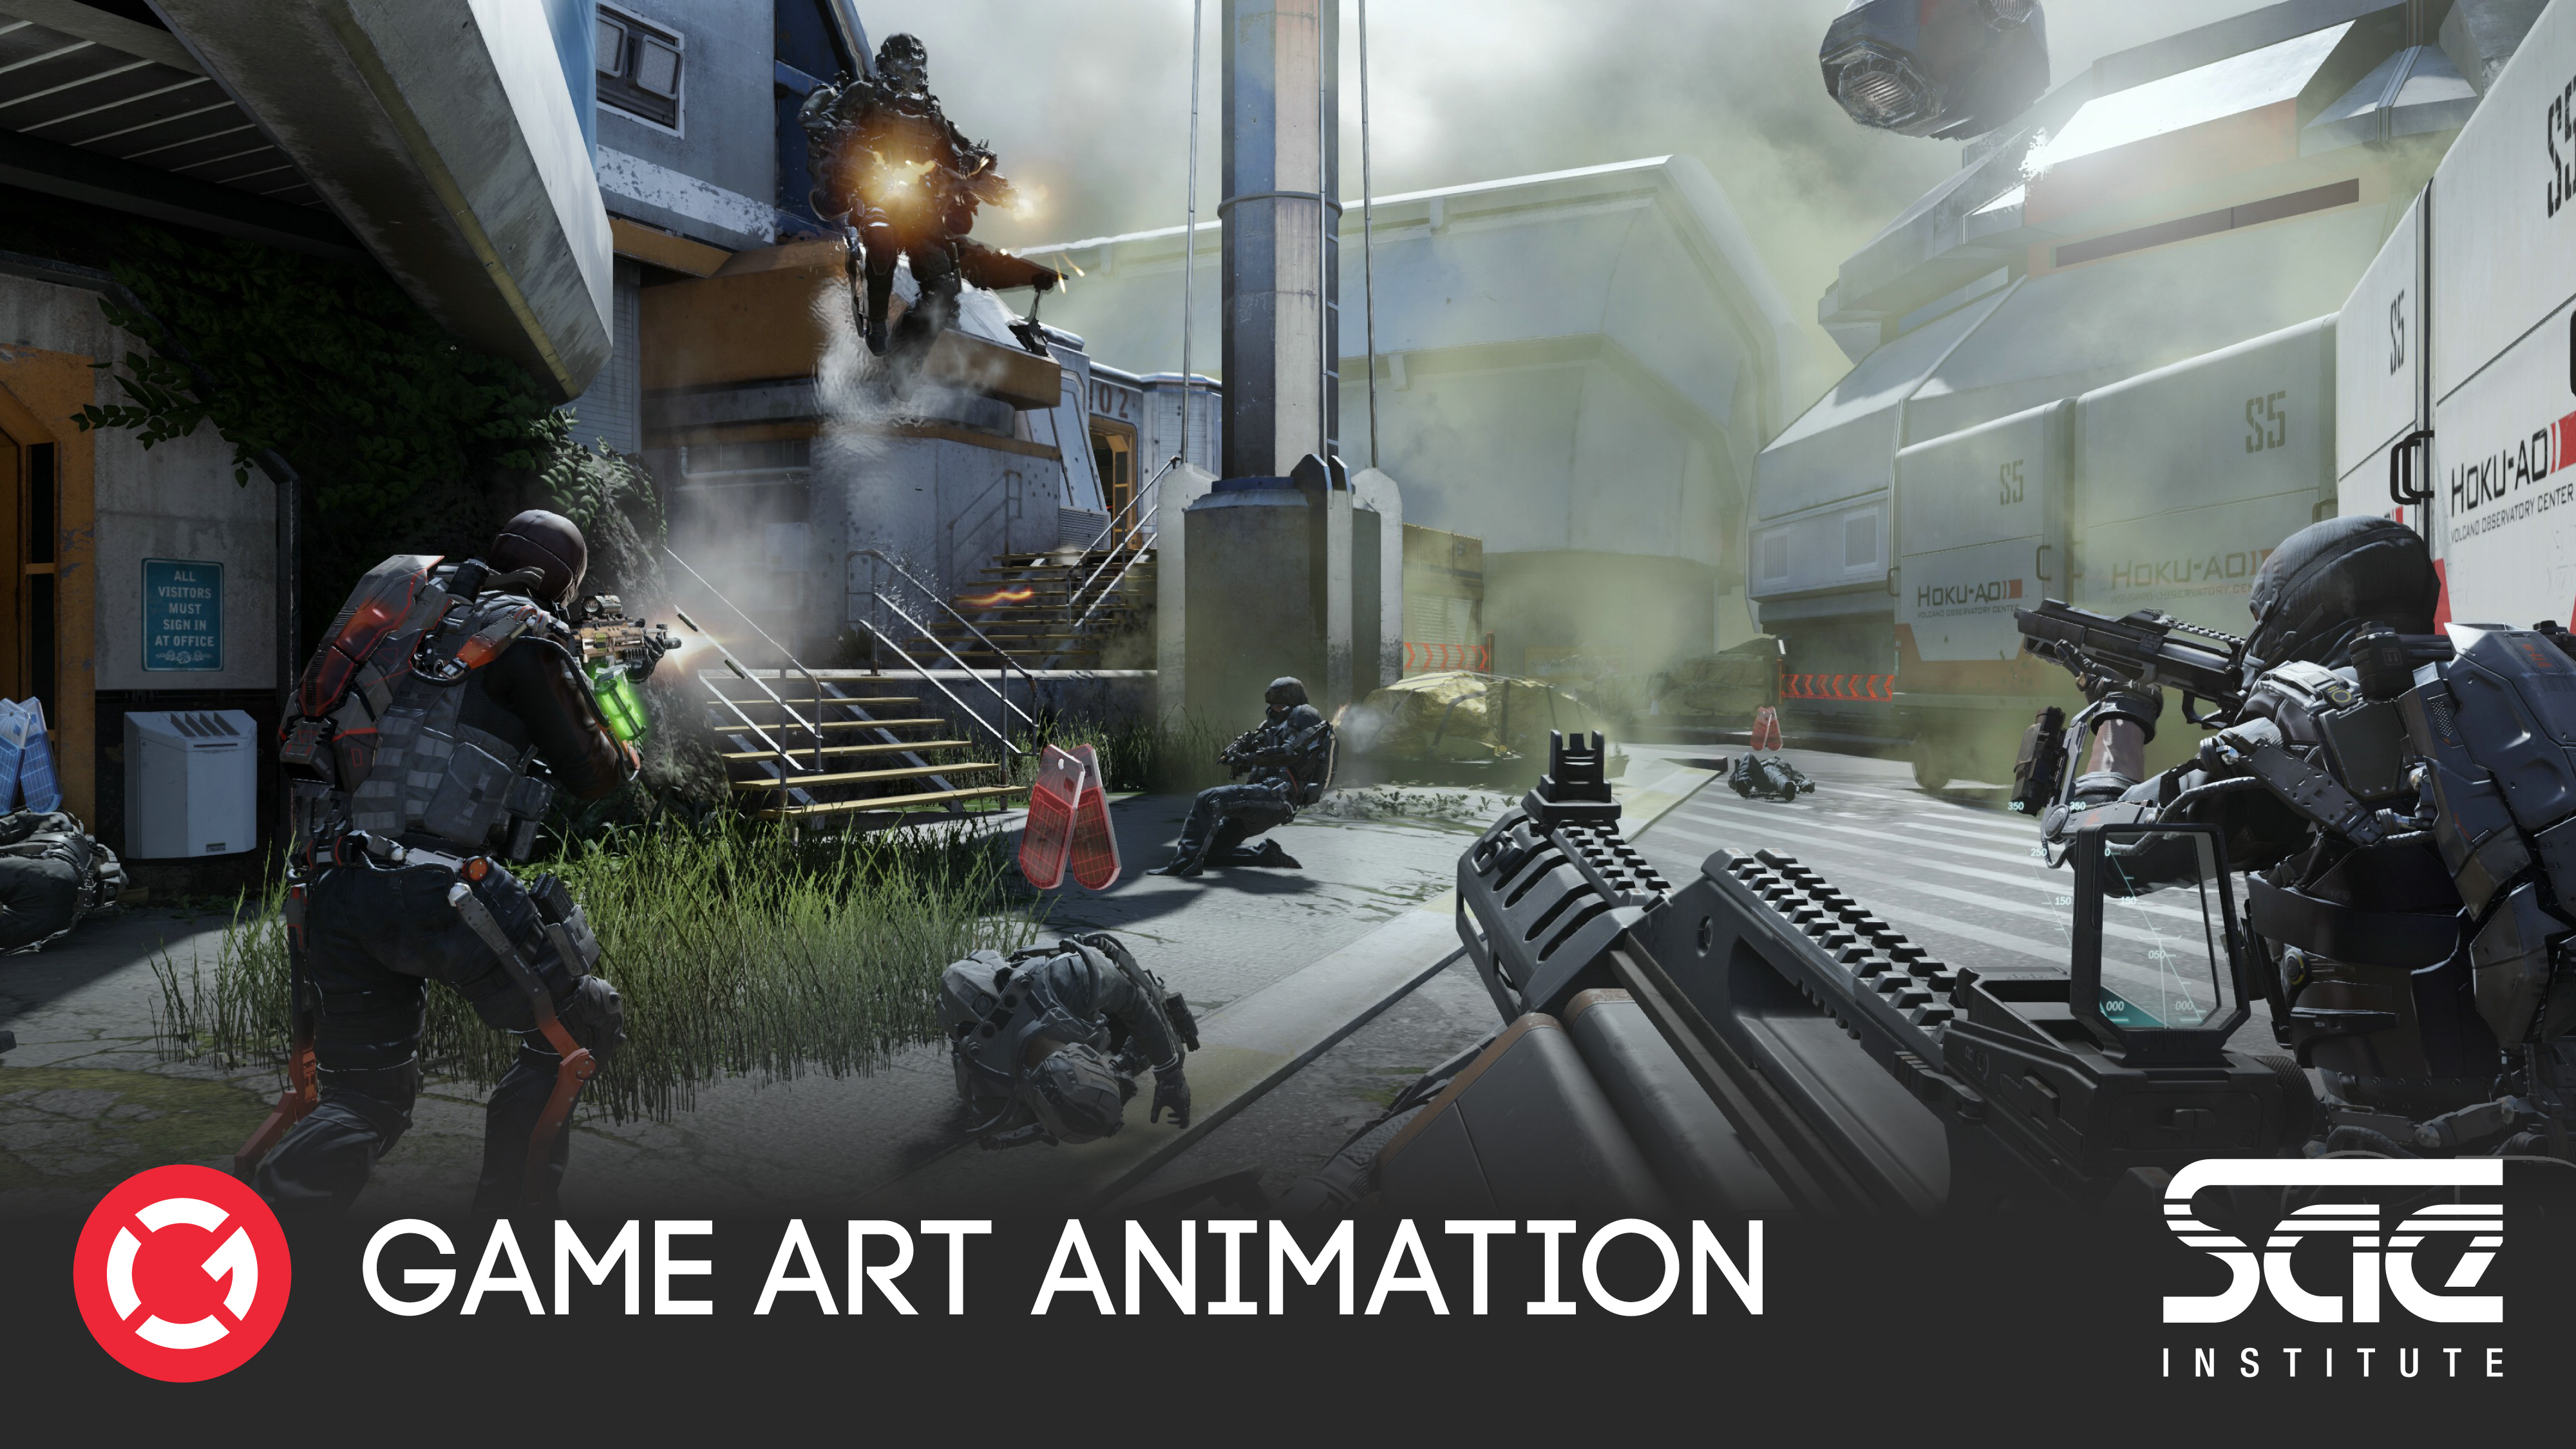 Study BABSc Hons Game Art And Animation - Art institute video game design